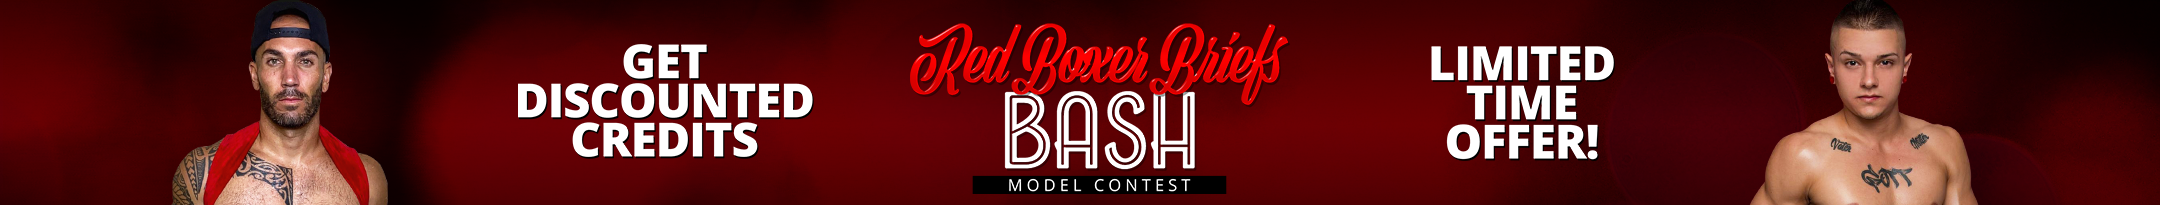 Red Boxer Briefs Bash Discount Promo